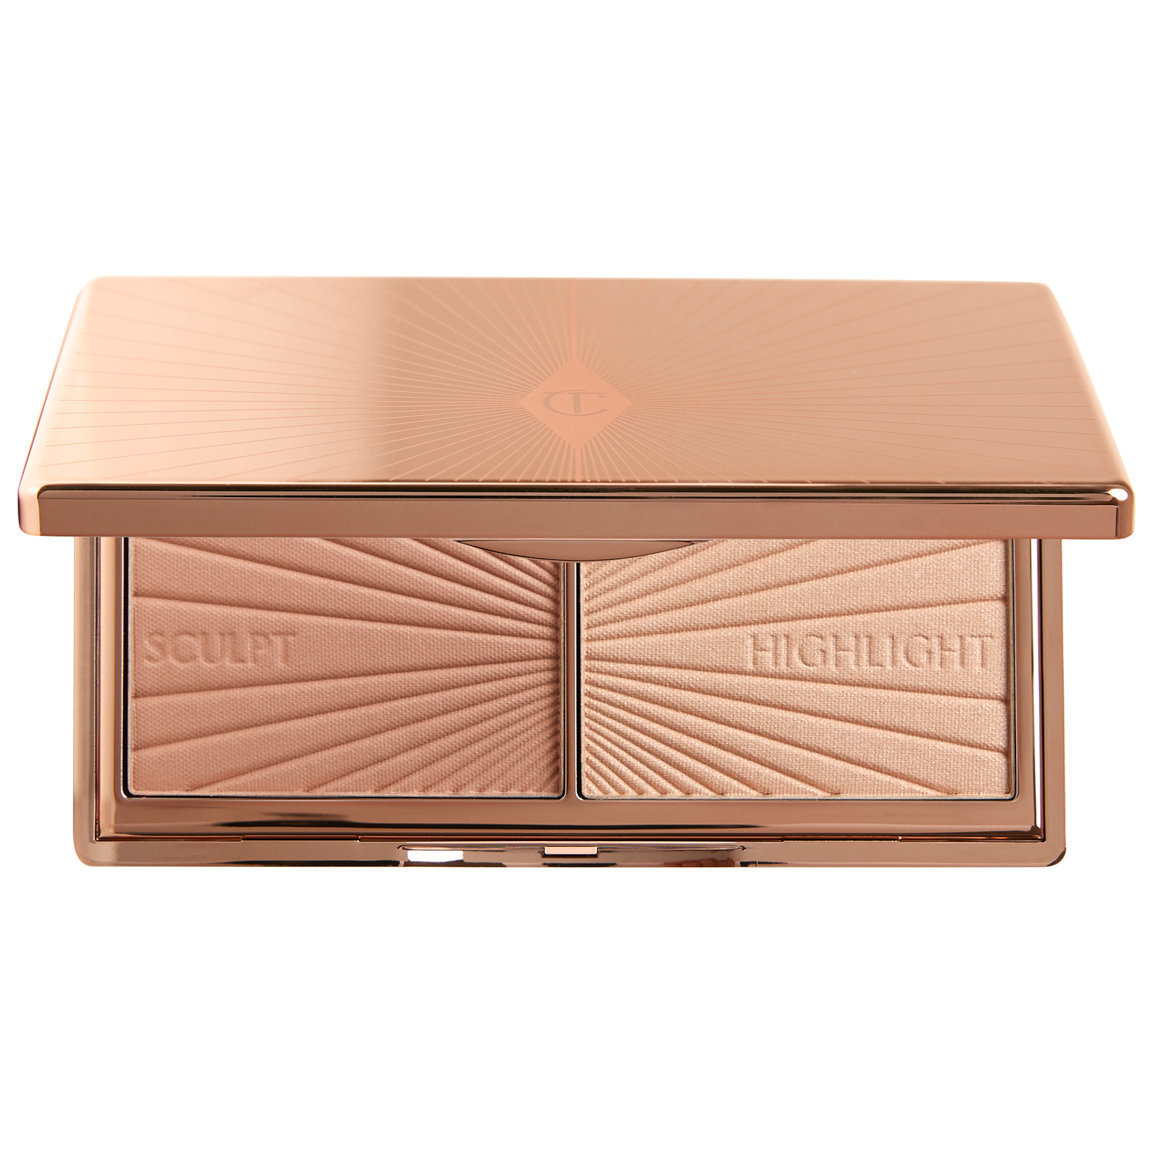 CHARLOTTE TILBURY Mini Filmstar Bronze & Glow Contour Duo - Limited Edition